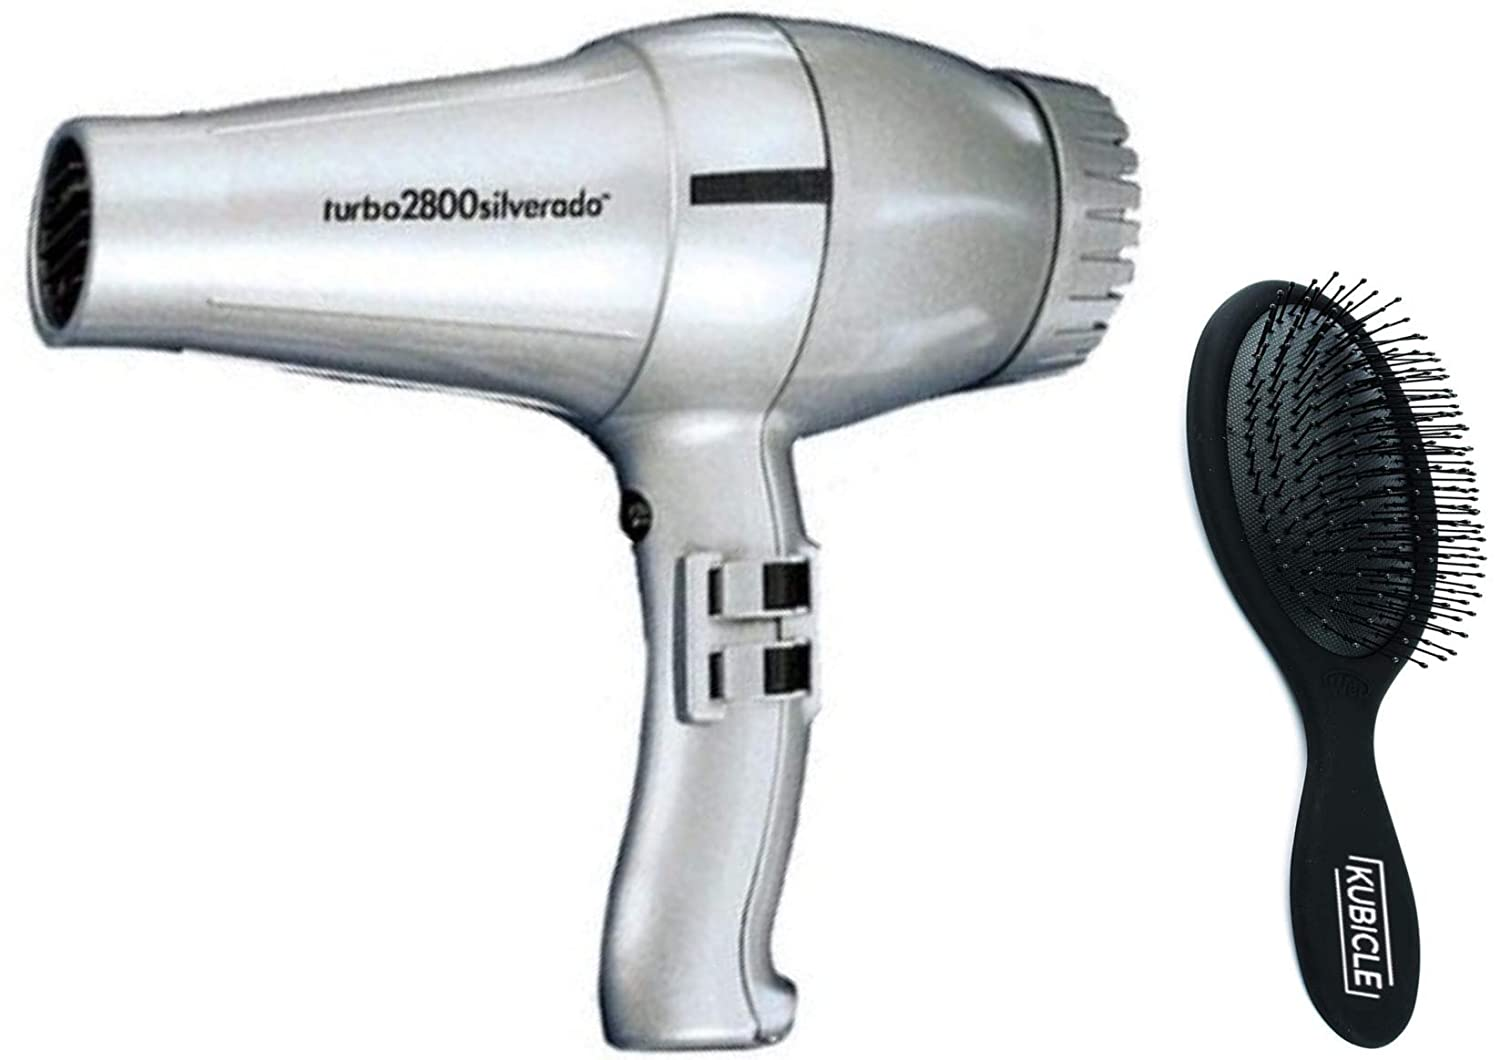 Turbo Italian Hair Blow Dryer with Extra Quiet Operation with Multiple Heat/Speeds and Kubicle Hair Brush Bundle (Silver)